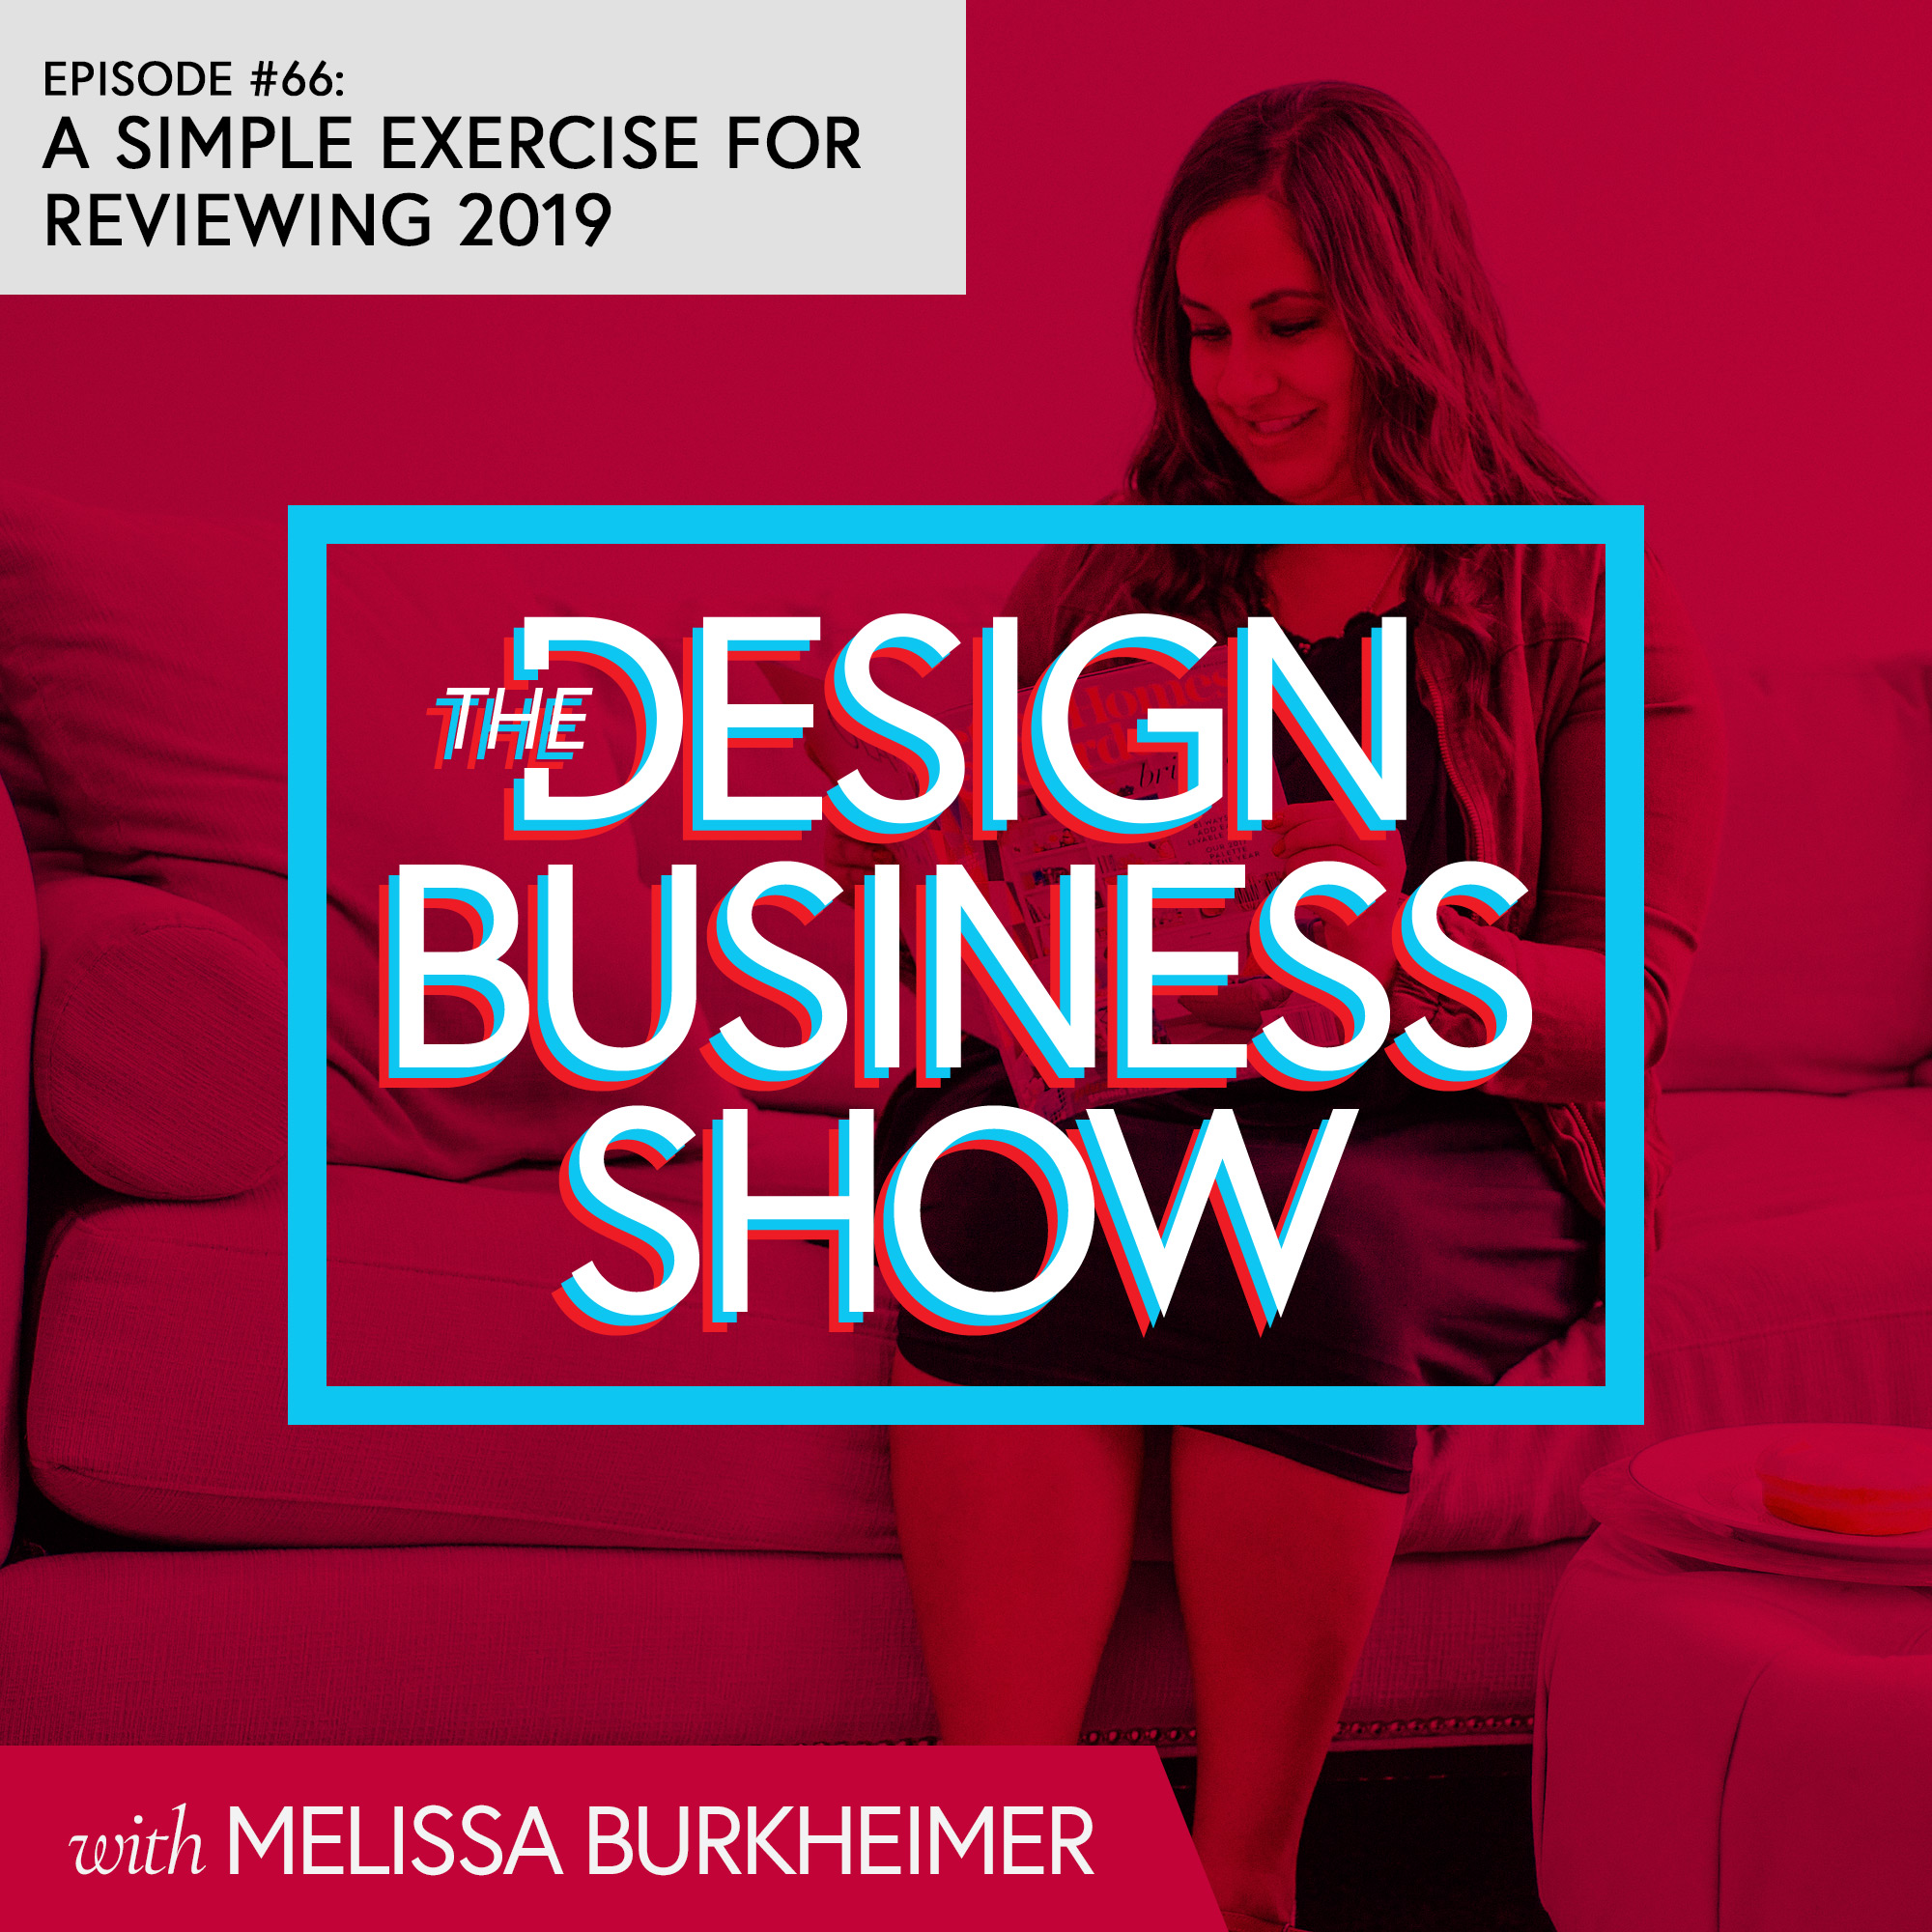 Check out episode 66 of The Design Business Show to learn a simple exercise to review your year.